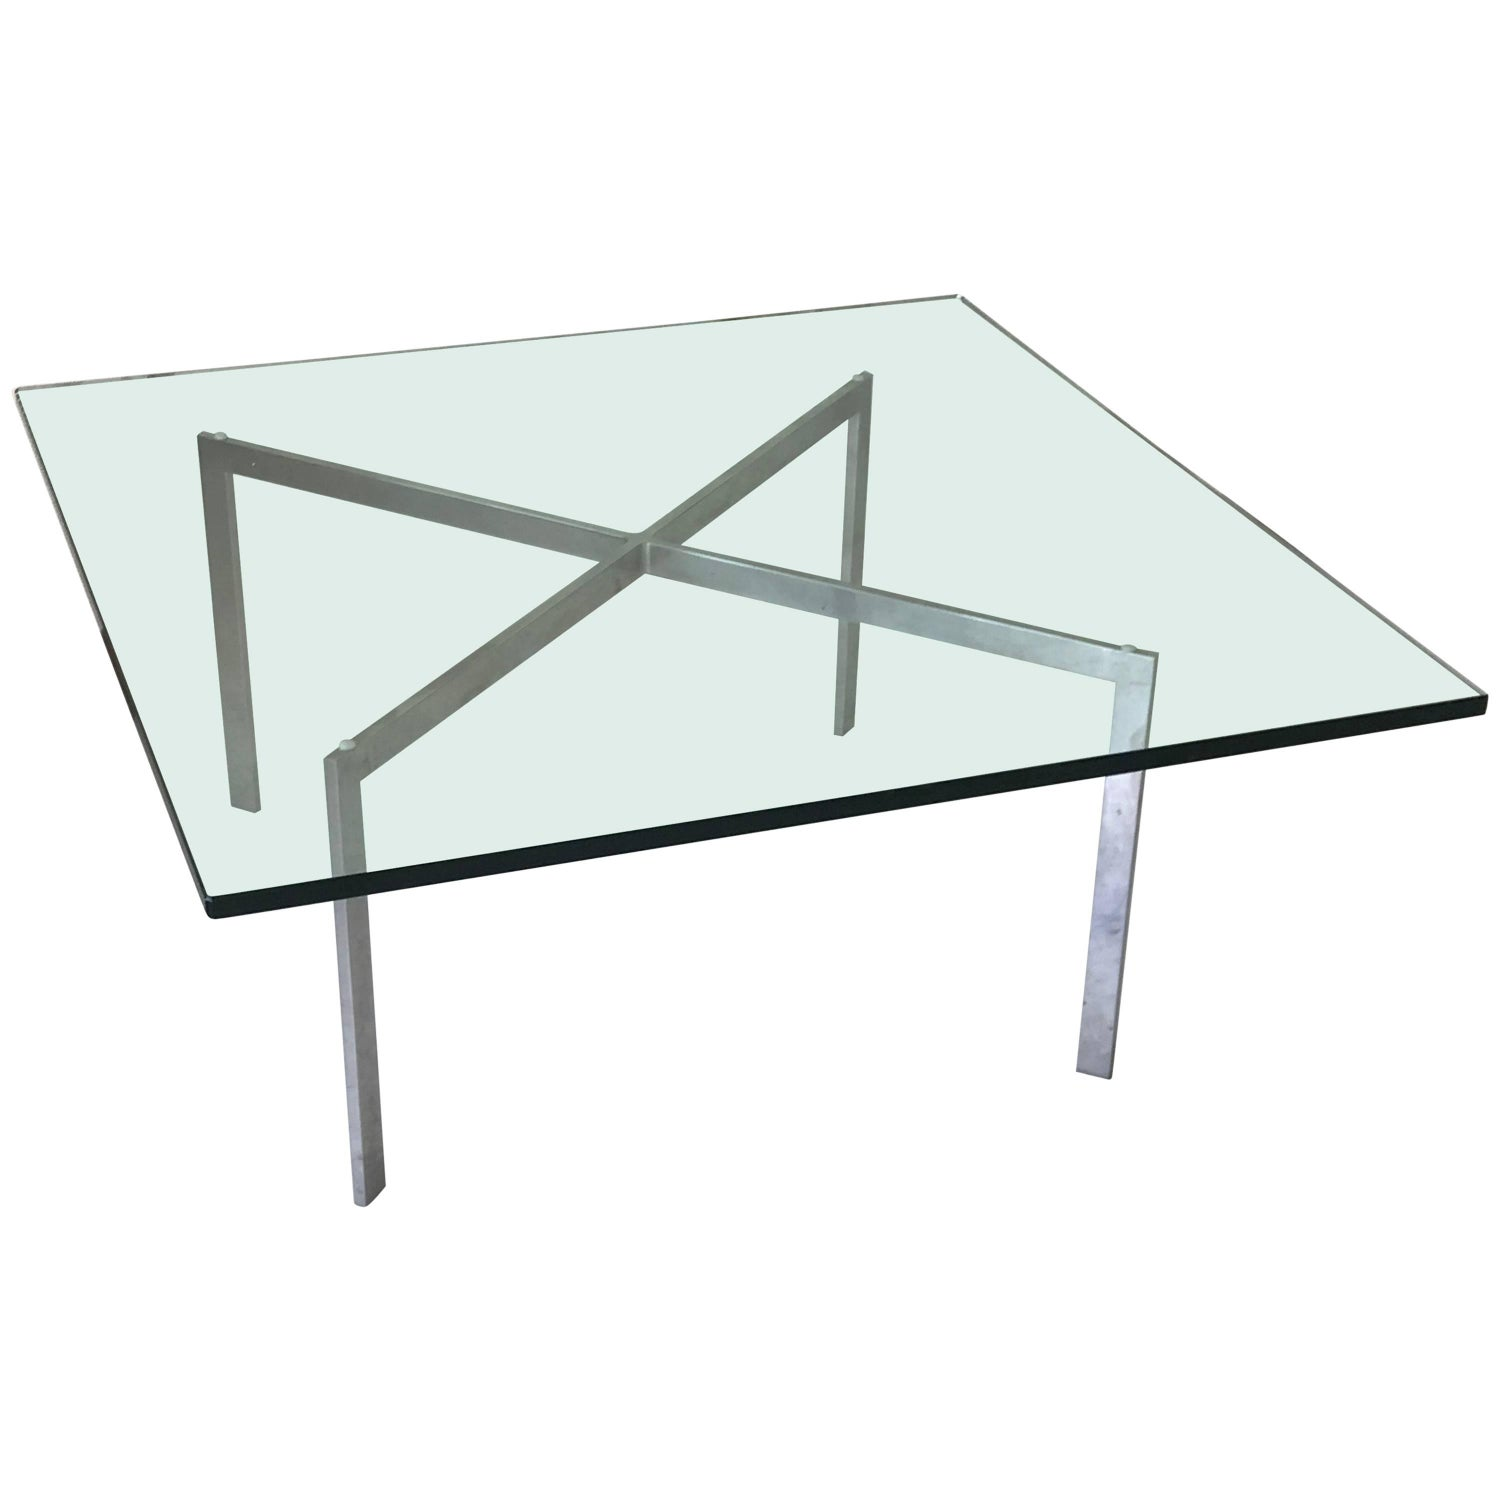 1970s Knoll Mies Van Der Rohe Barcelona Coffee Table with Glass